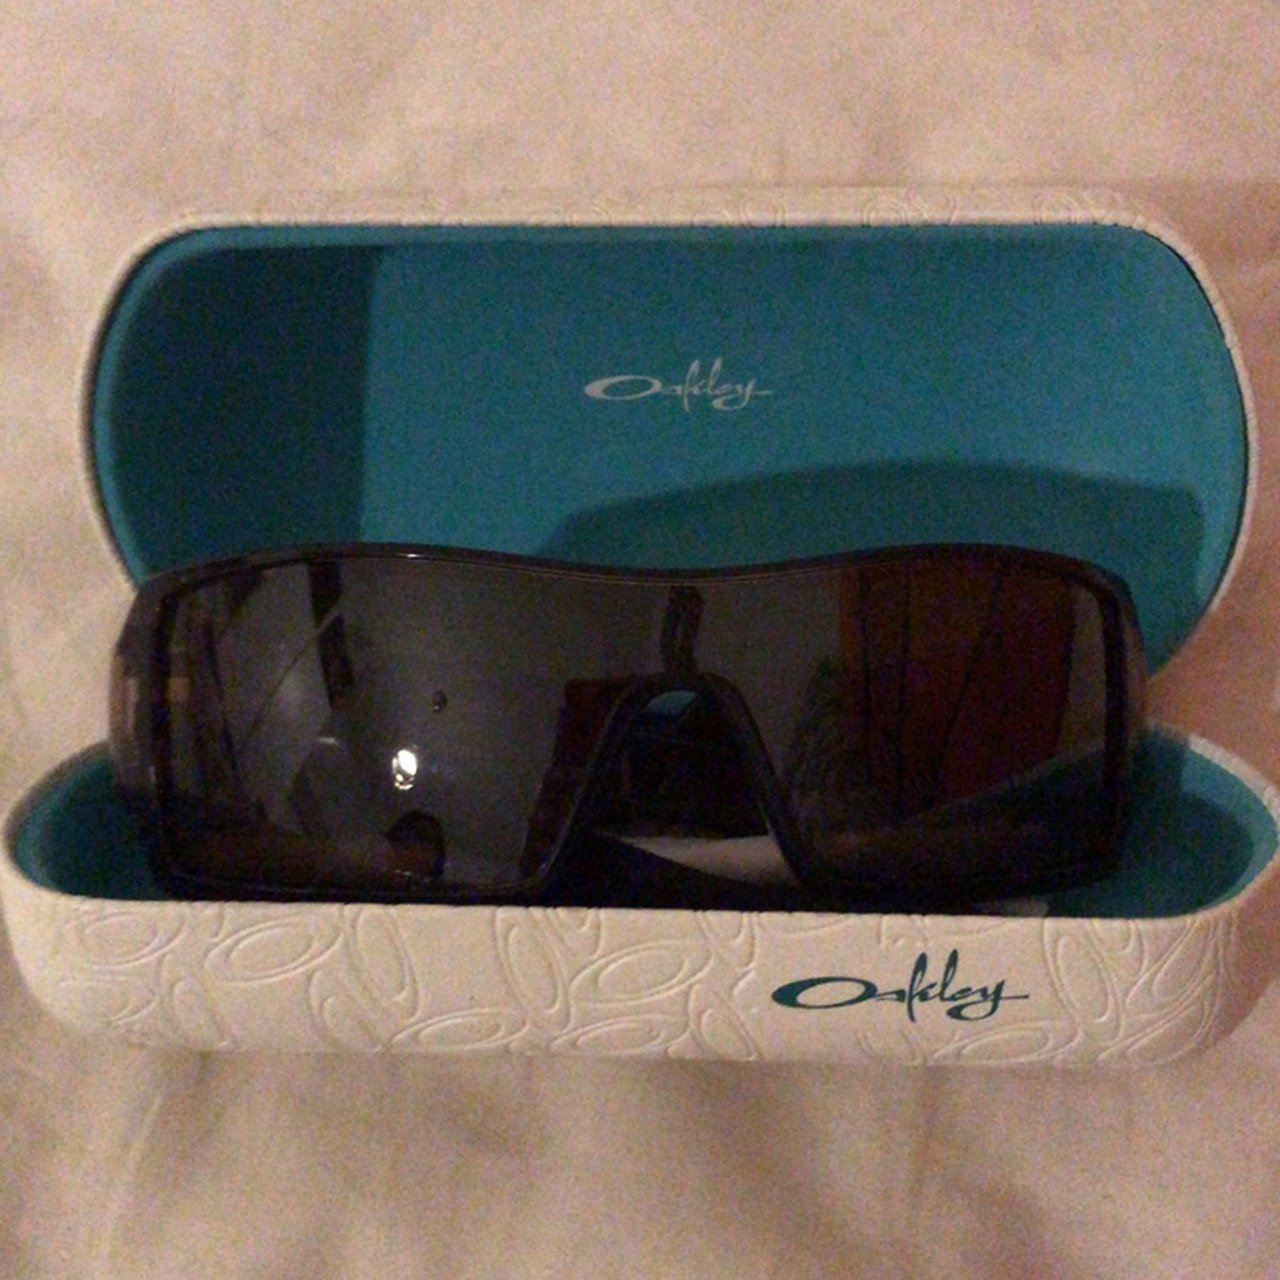 dc35419c085 Authentic Oakley sunglasses!! In light brown